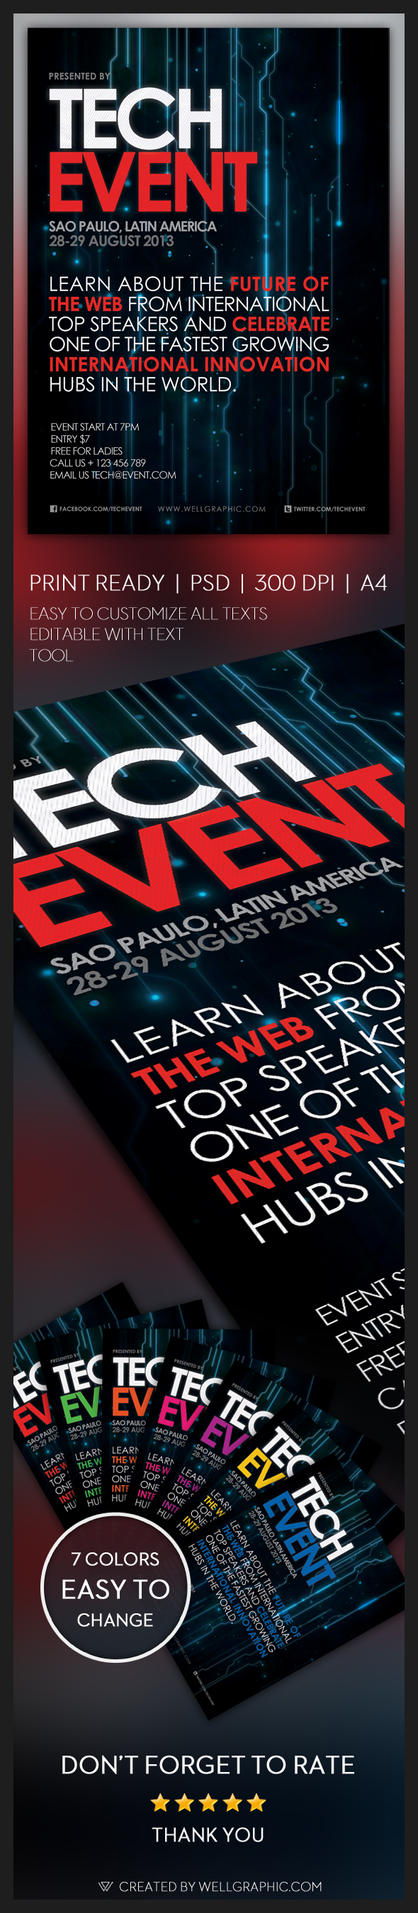 Tech Event Flyer by wellgraphic